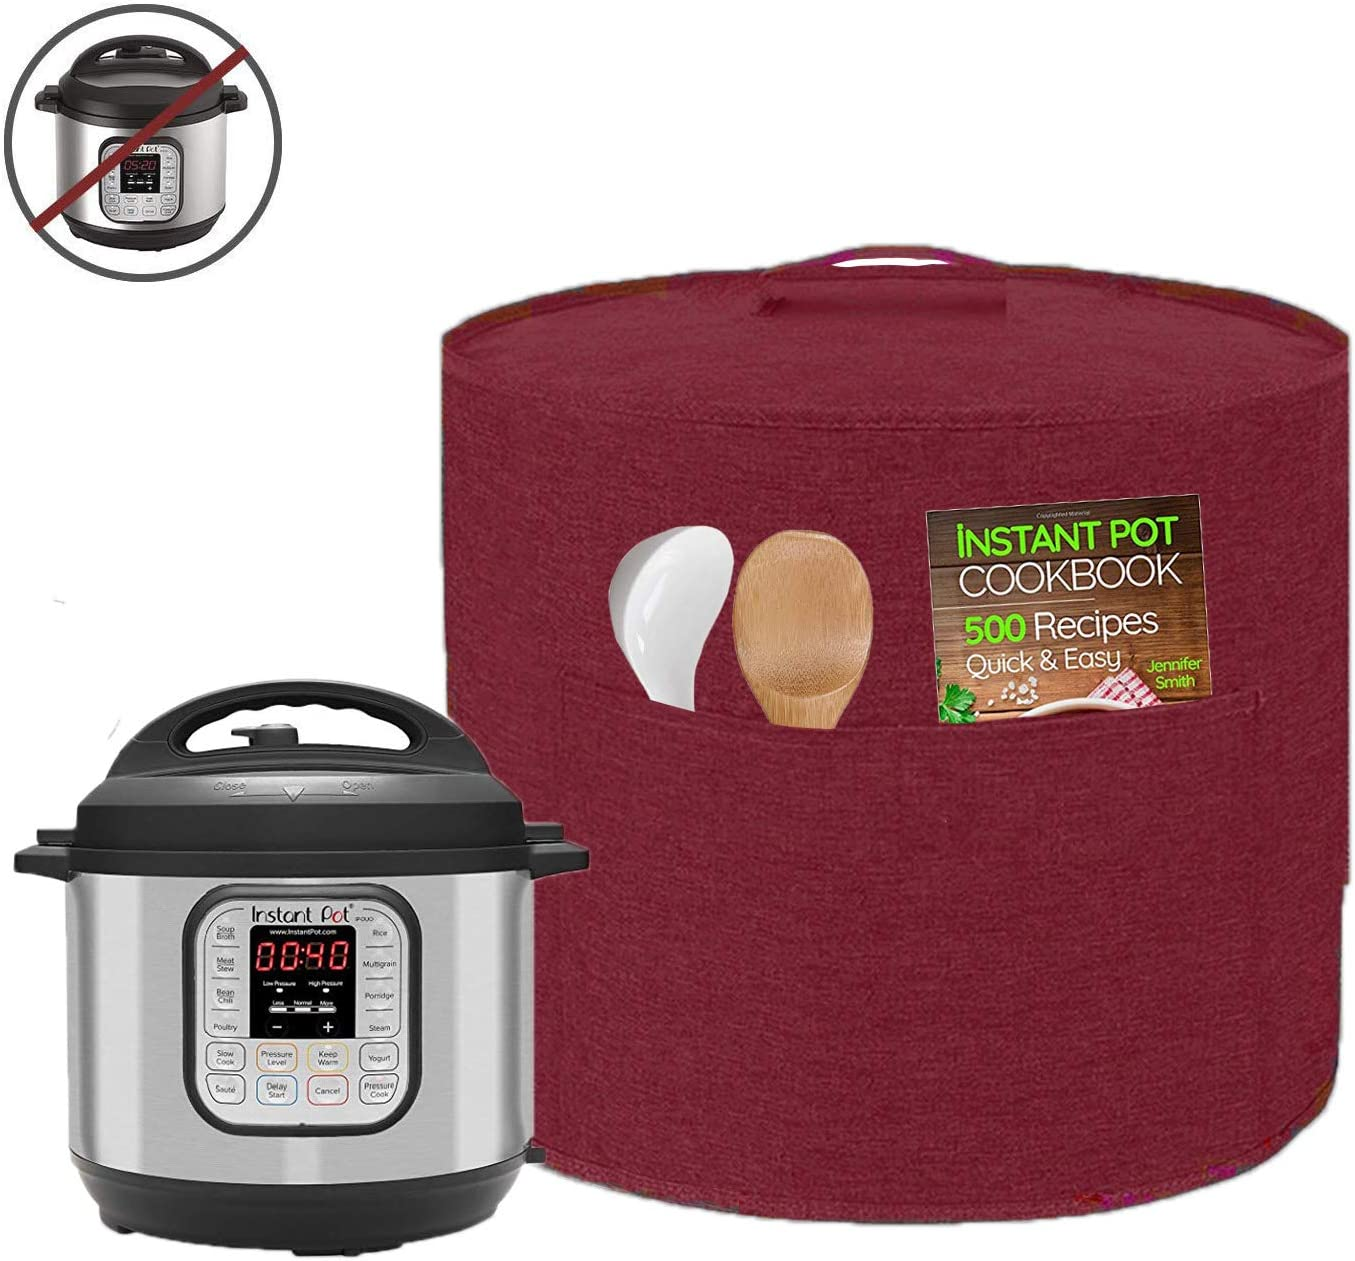 Appliance Cover Dust Cover Watetproof for 8 Quart Instant Pot,Electric Pressure Cooker,Rice cooker,Air Fryer and Crock Pot, Machine Washable (For 8 Quart Instant Pot, Wine Red)